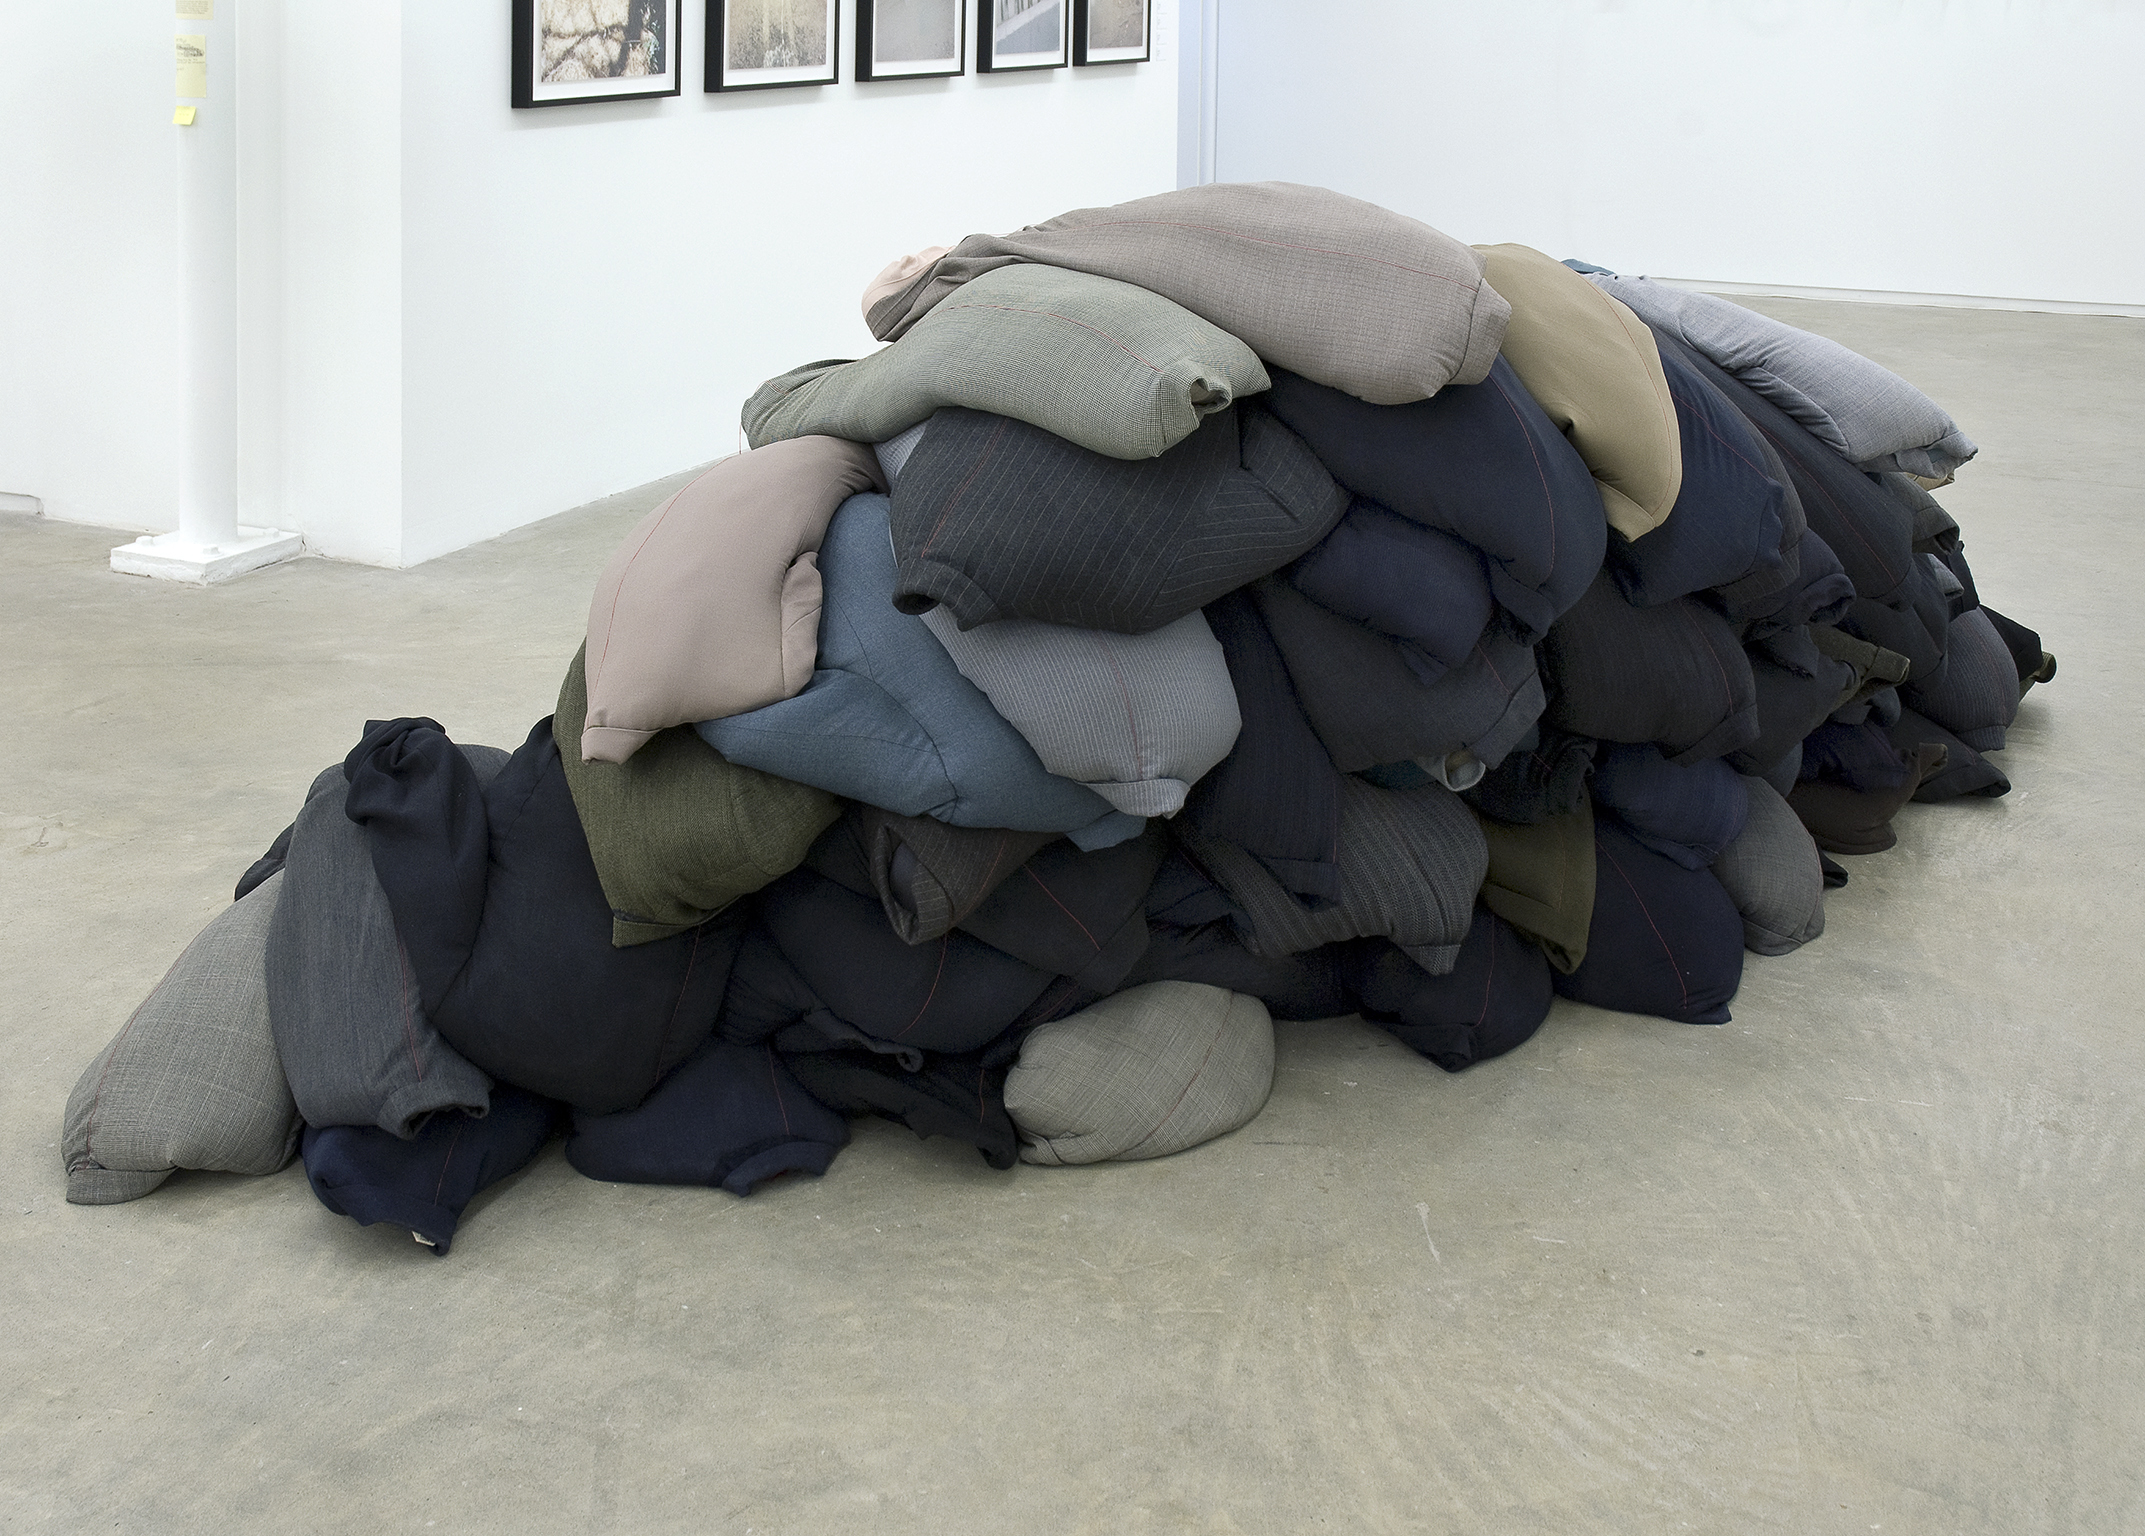 Rebecca Belmore, Thin Red Line, 2009, suit jackets, sand, dimensions variable by